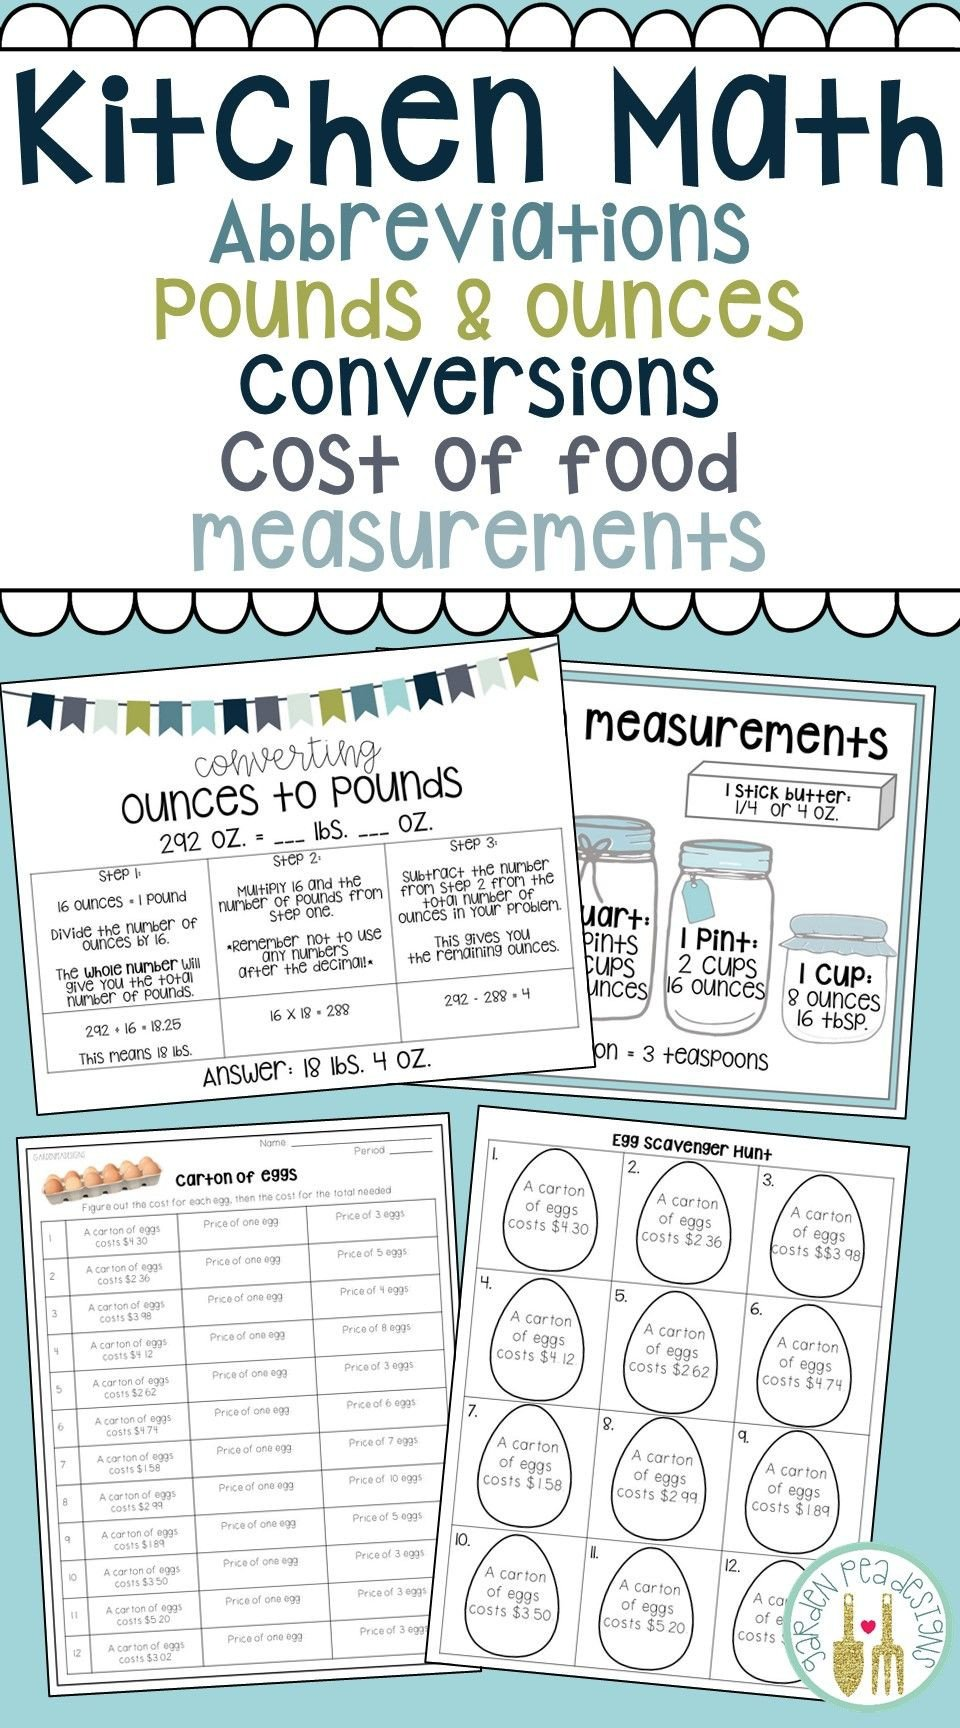 Home Economics Worksheets $5 00 Teach Kitchen Abbreviations How to Convert Pounds to